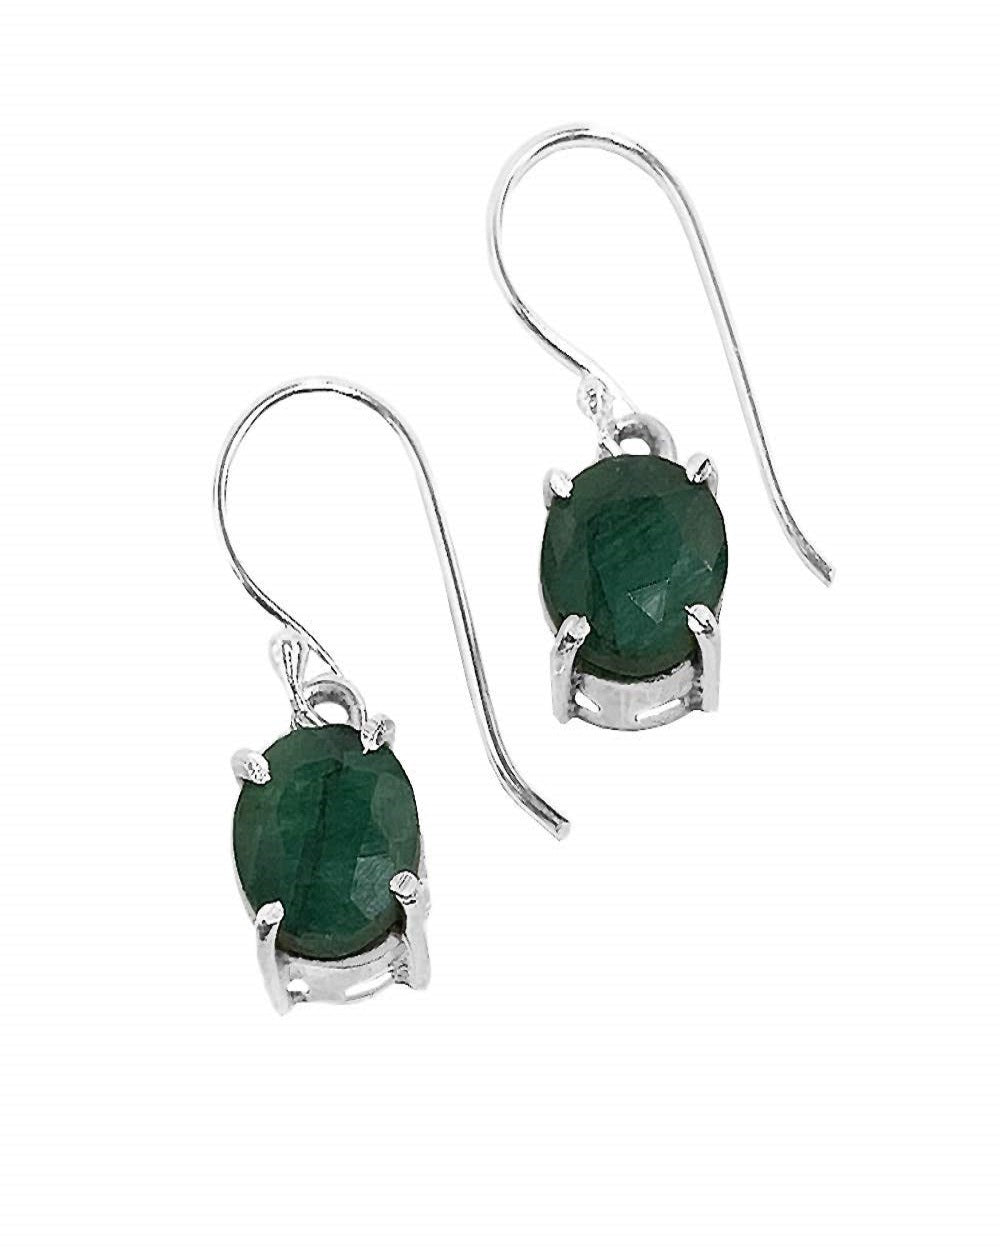 Cushion Cut Raw Emerald Earrings in Sterling Silver